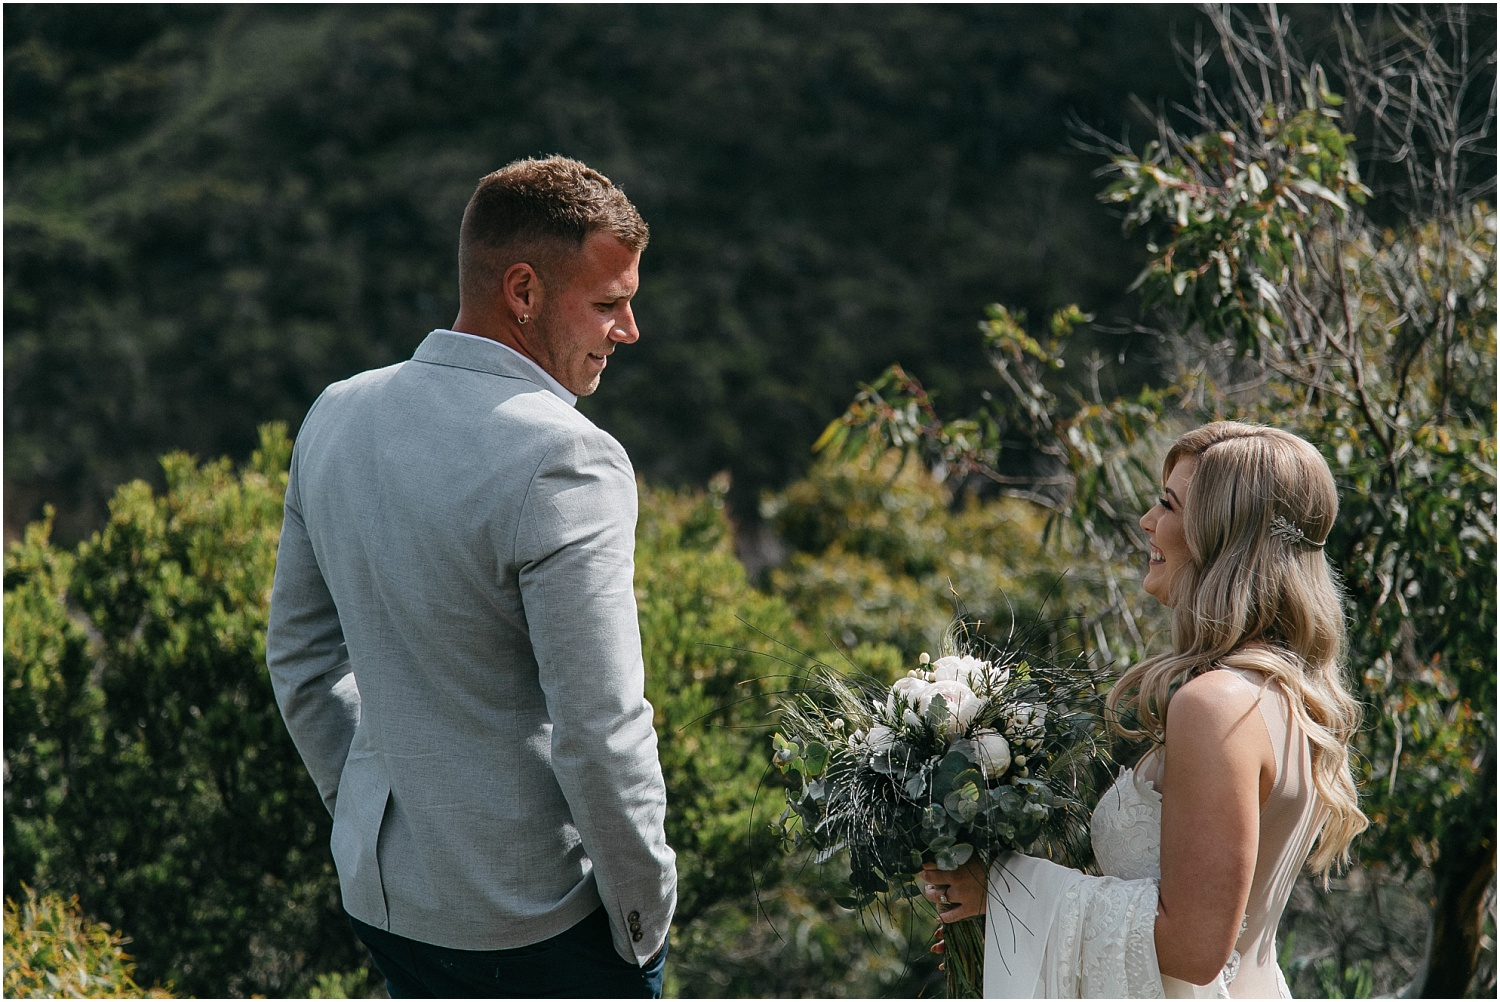 Renee and Ash's real elopement in Lorne on the Great Ocean Roadwith the ceremony at erskin falls._0057.jpg